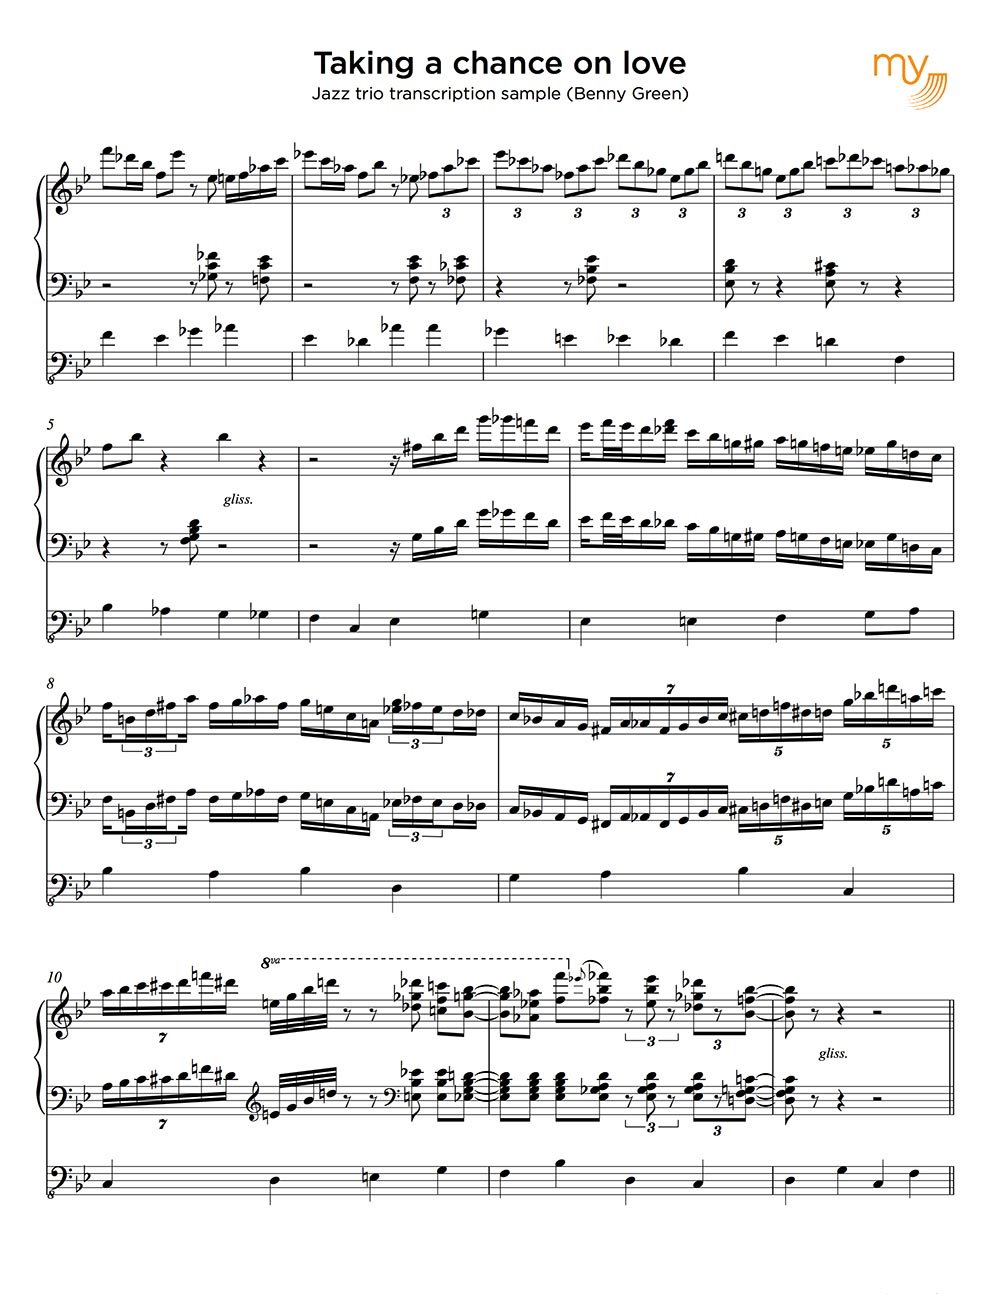 Jazz piano trio sheet music sample - sheet music transcriptions